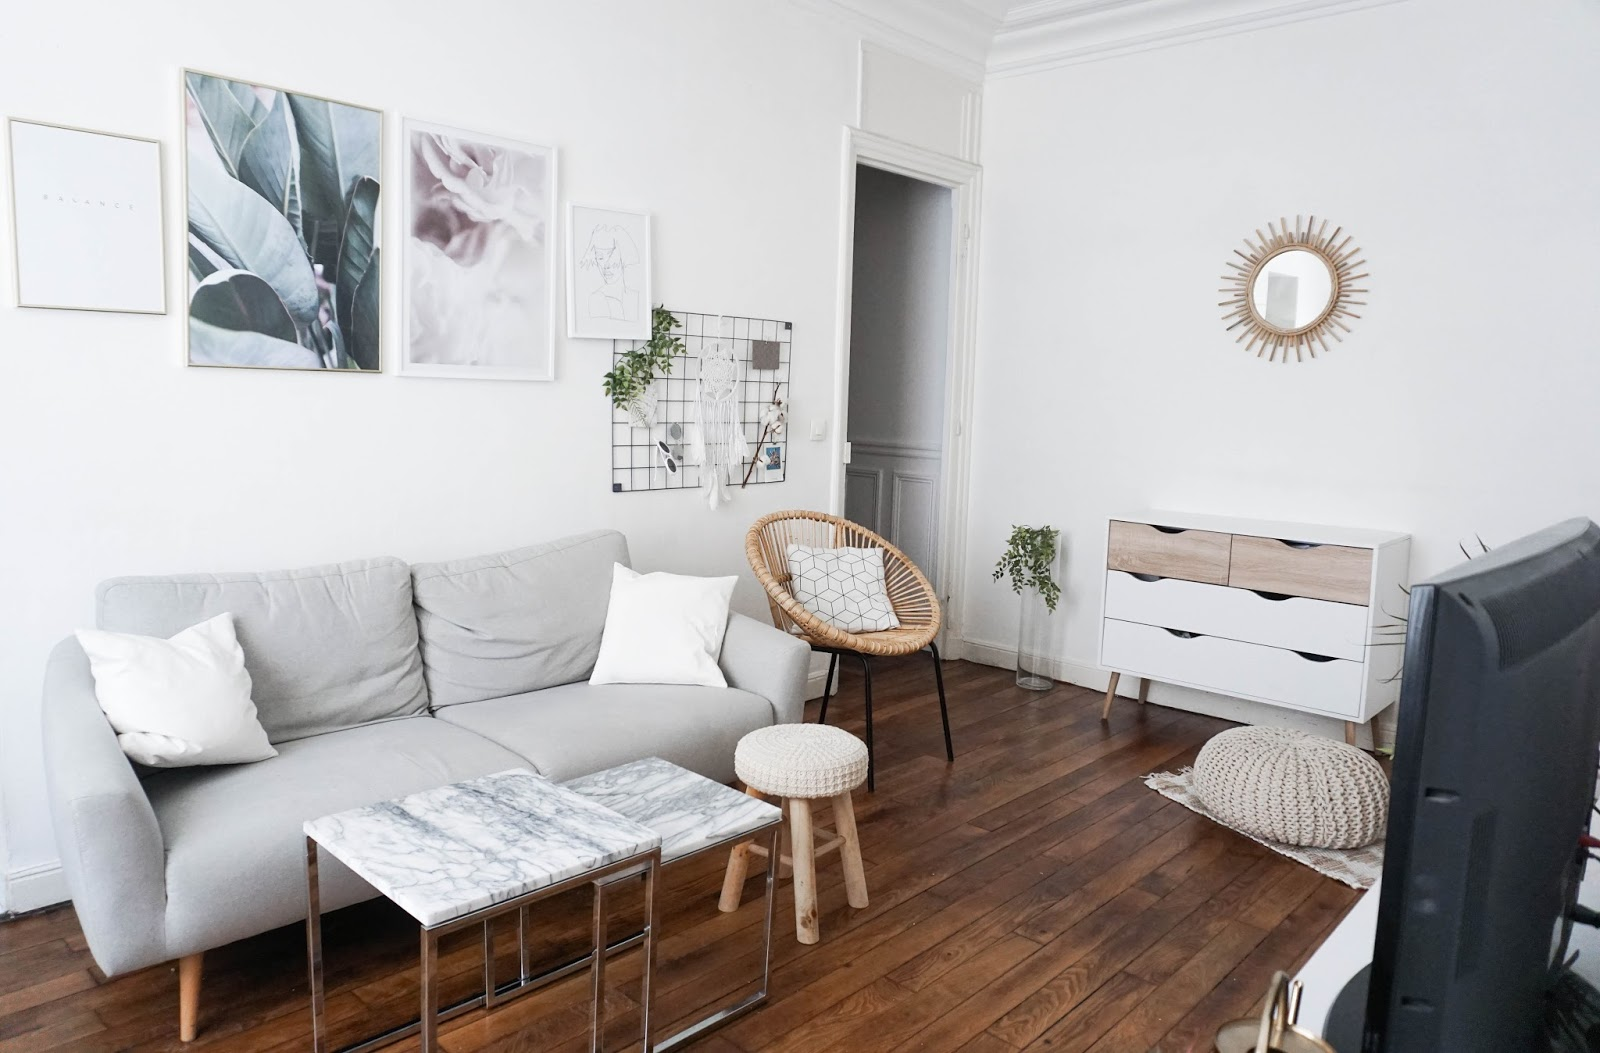 notre appartement parisien alicia mechani blog mode et lifestyle sur paris. Black Bedroom Furniture Sets. Home Design Ideas